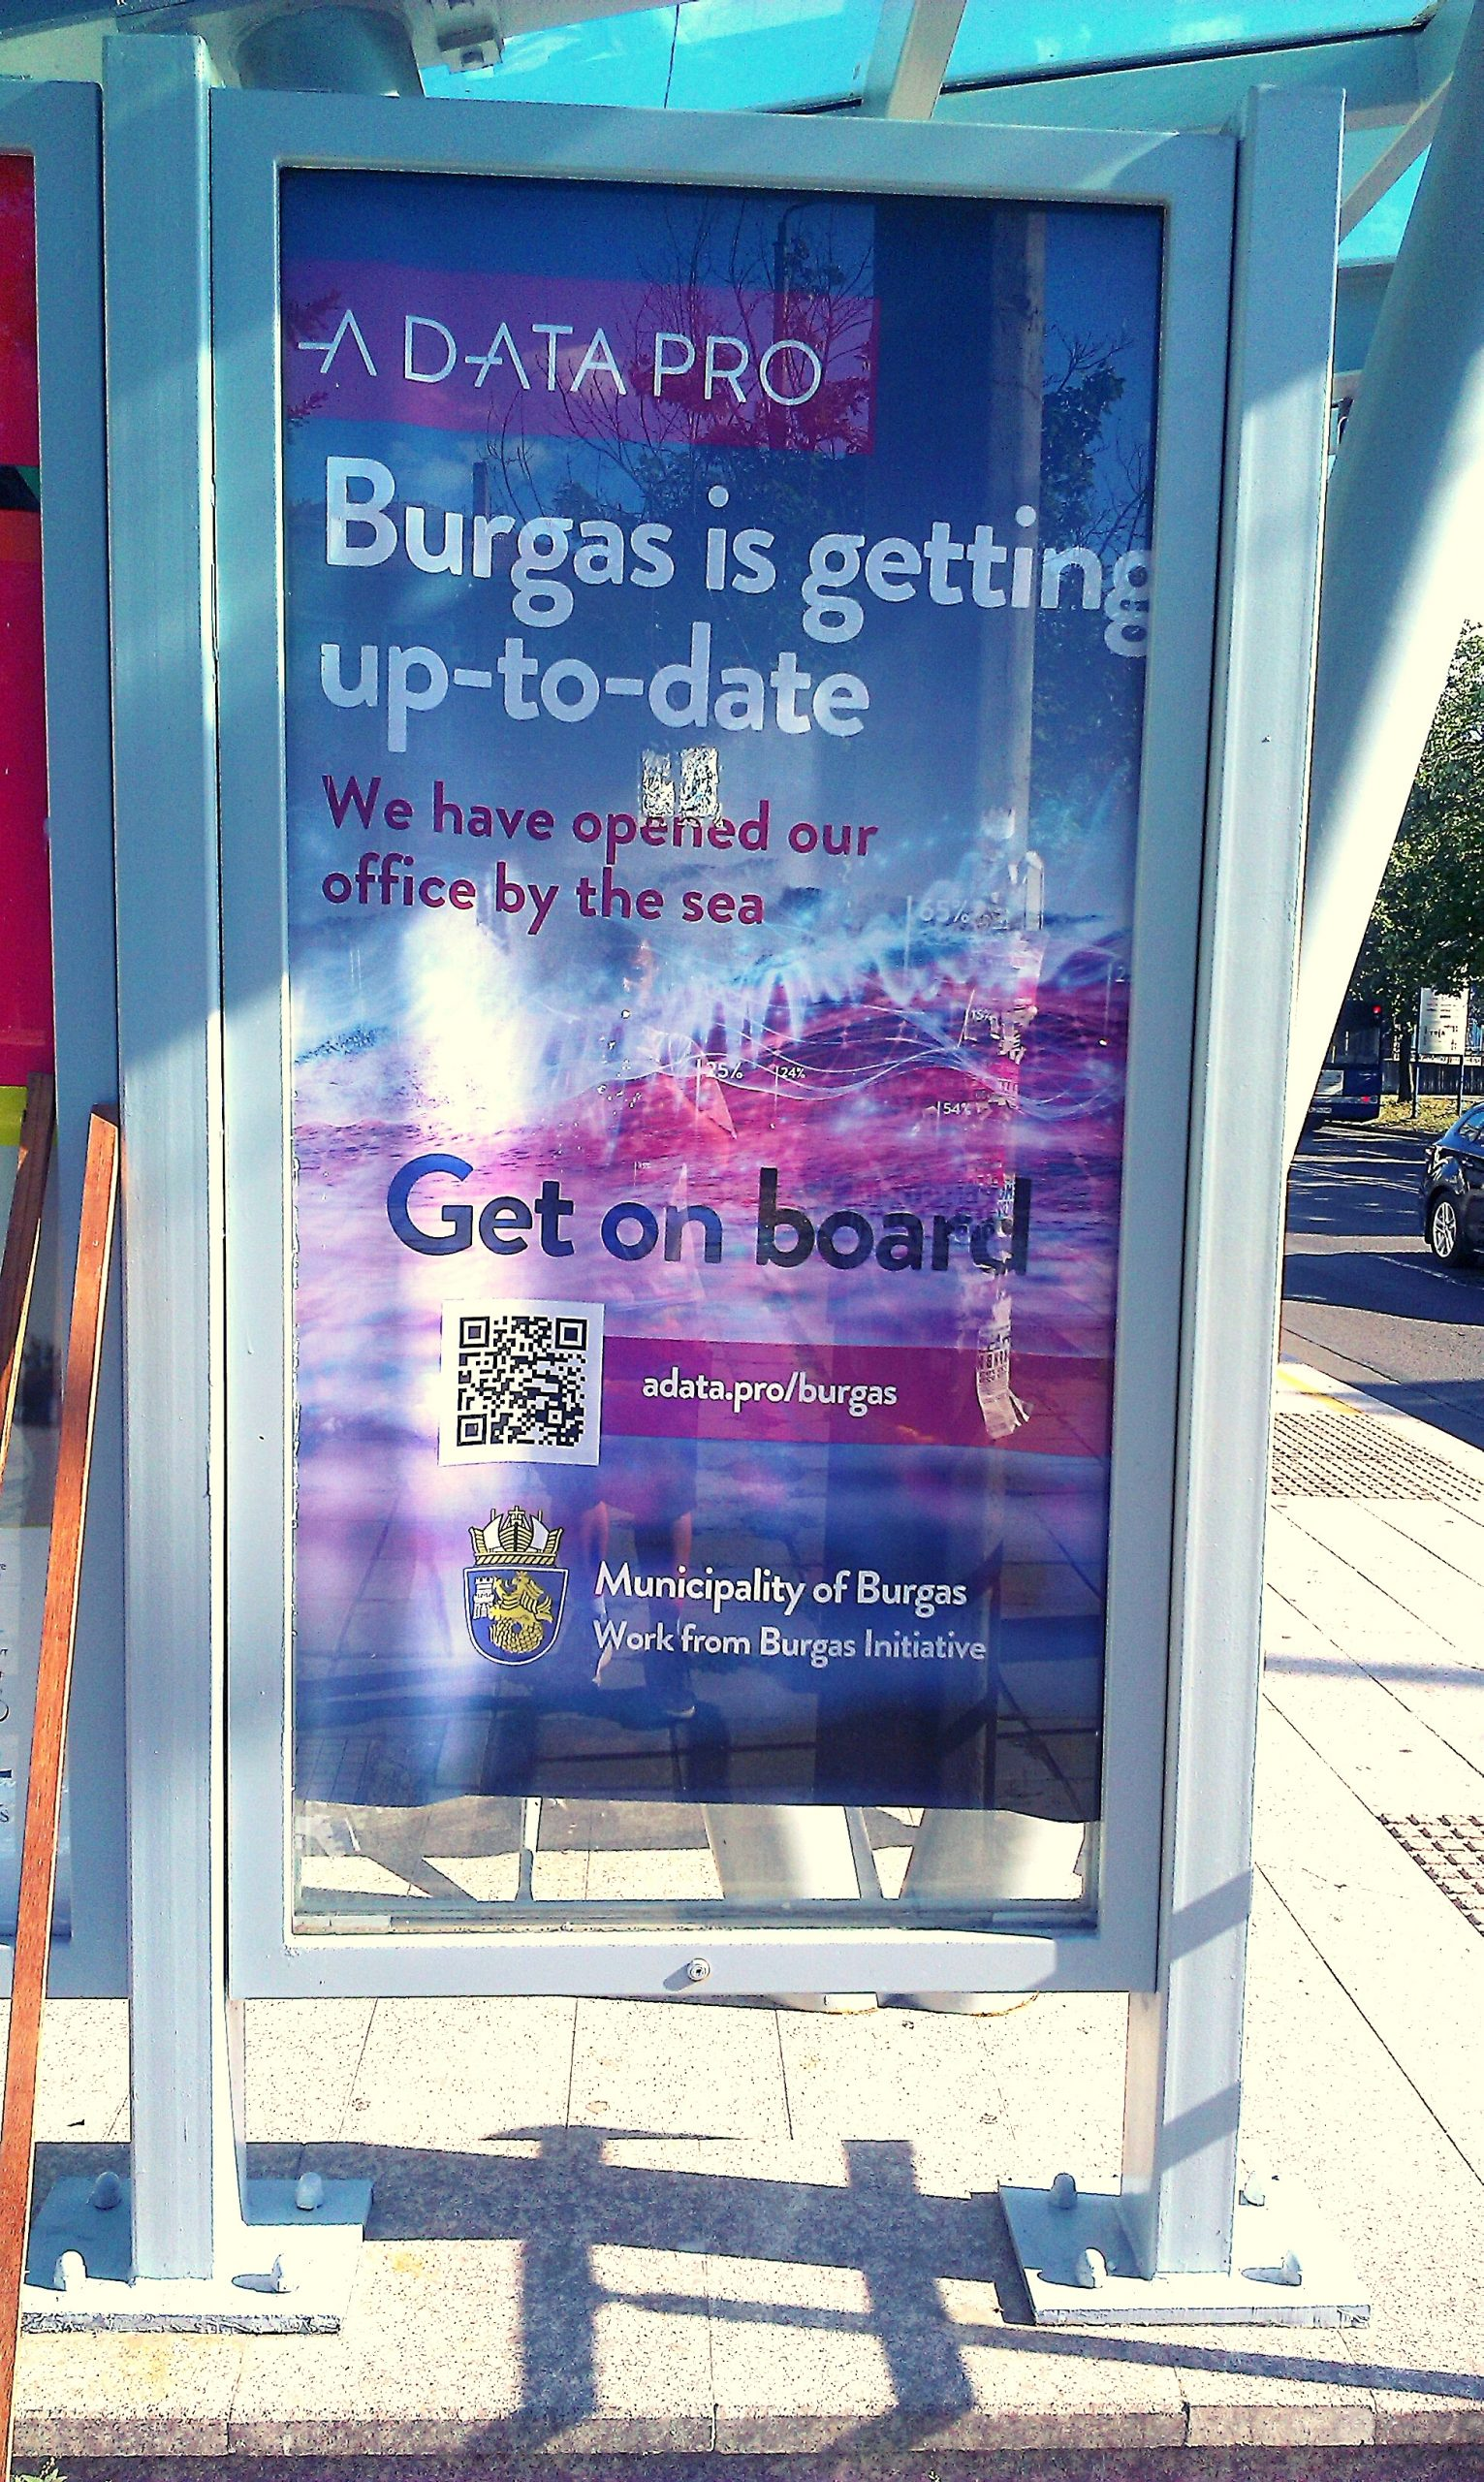 Bus stations Burgas is getting up-to-date